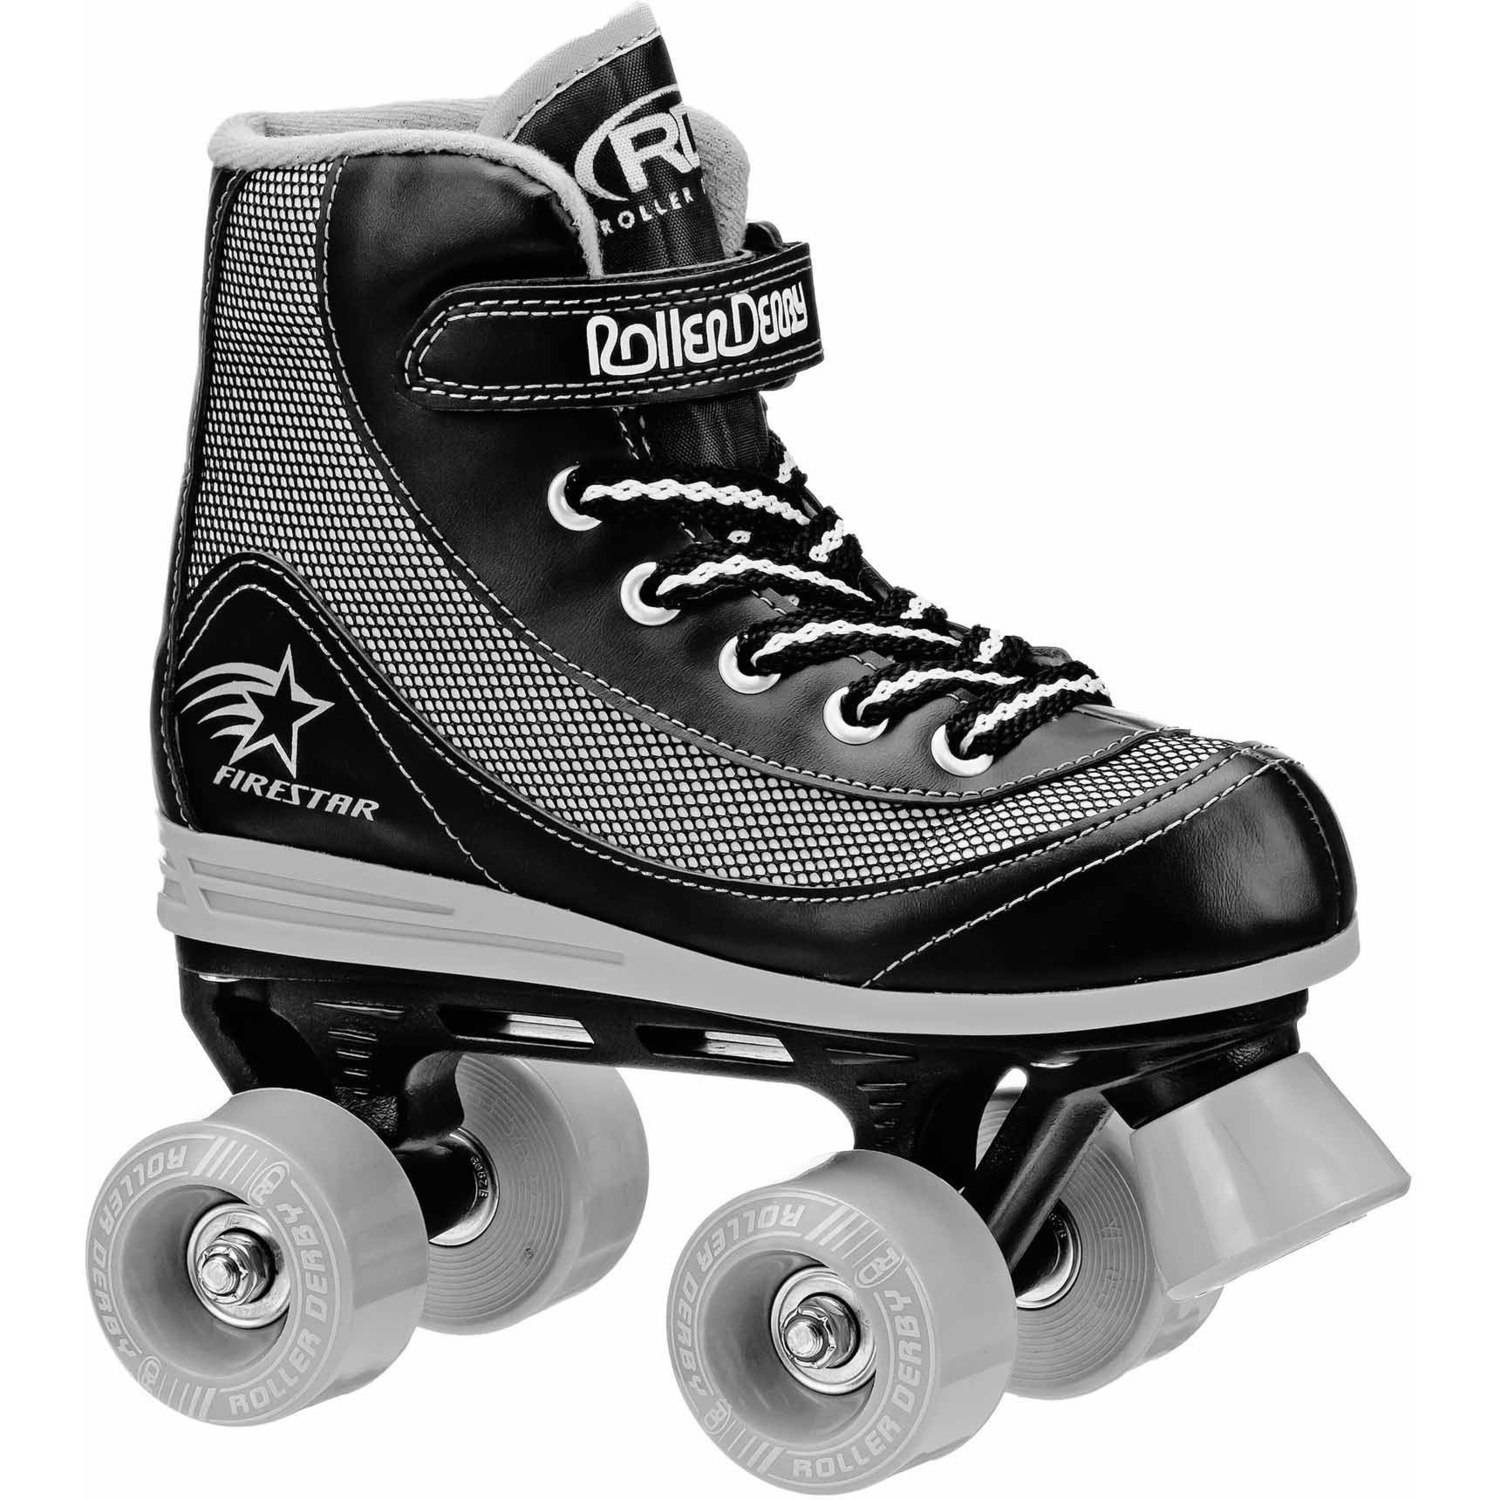 Roller skates size 13